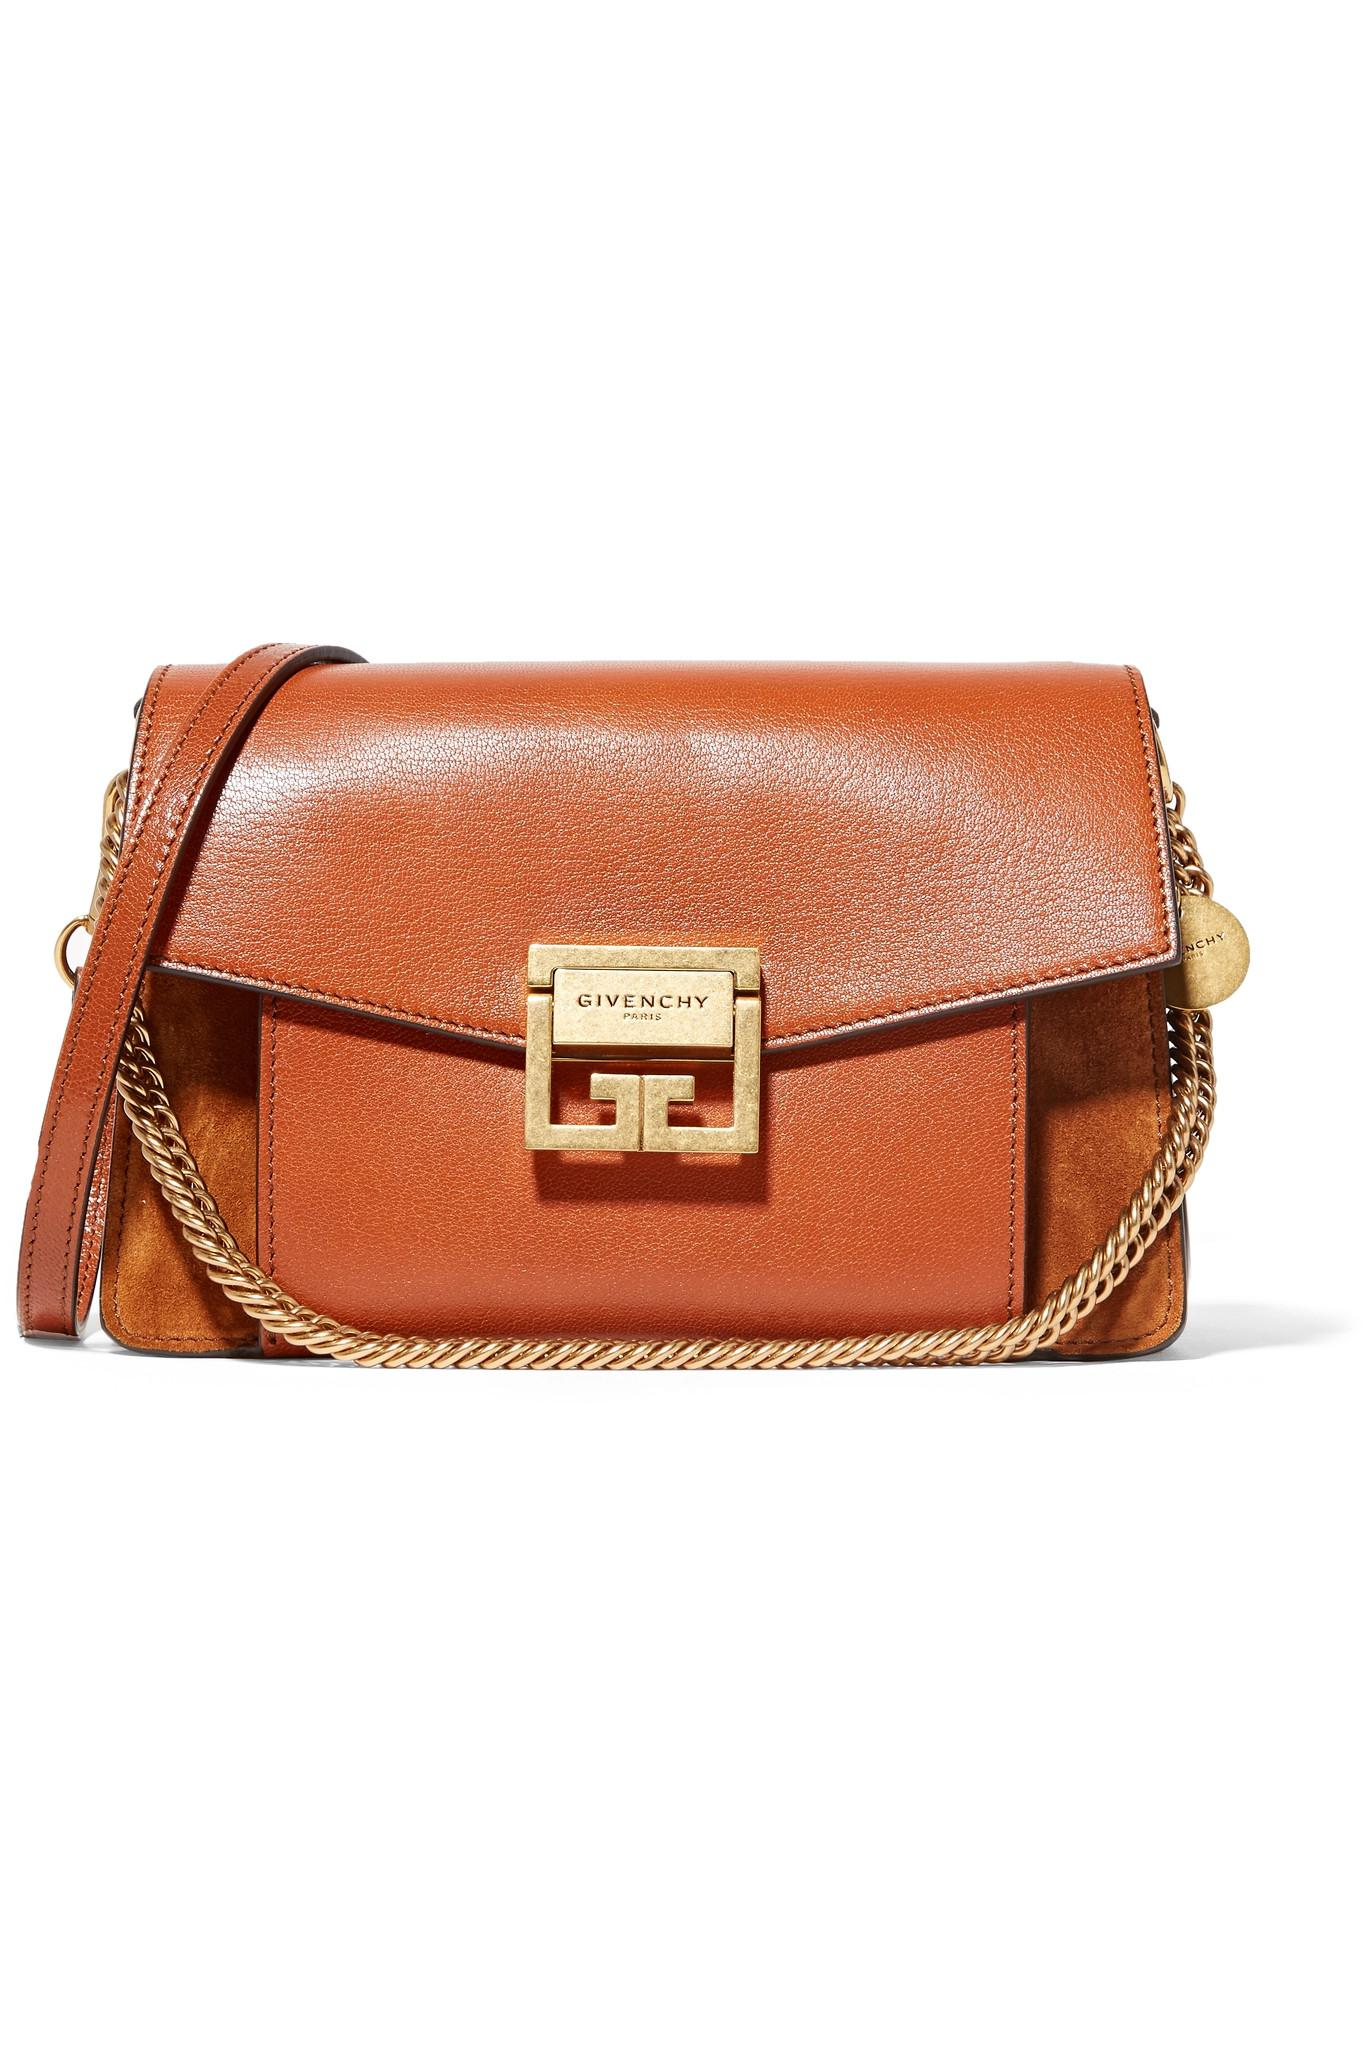 GIVENCHY - GV3 suede leather shoulder bag NDDHOJ